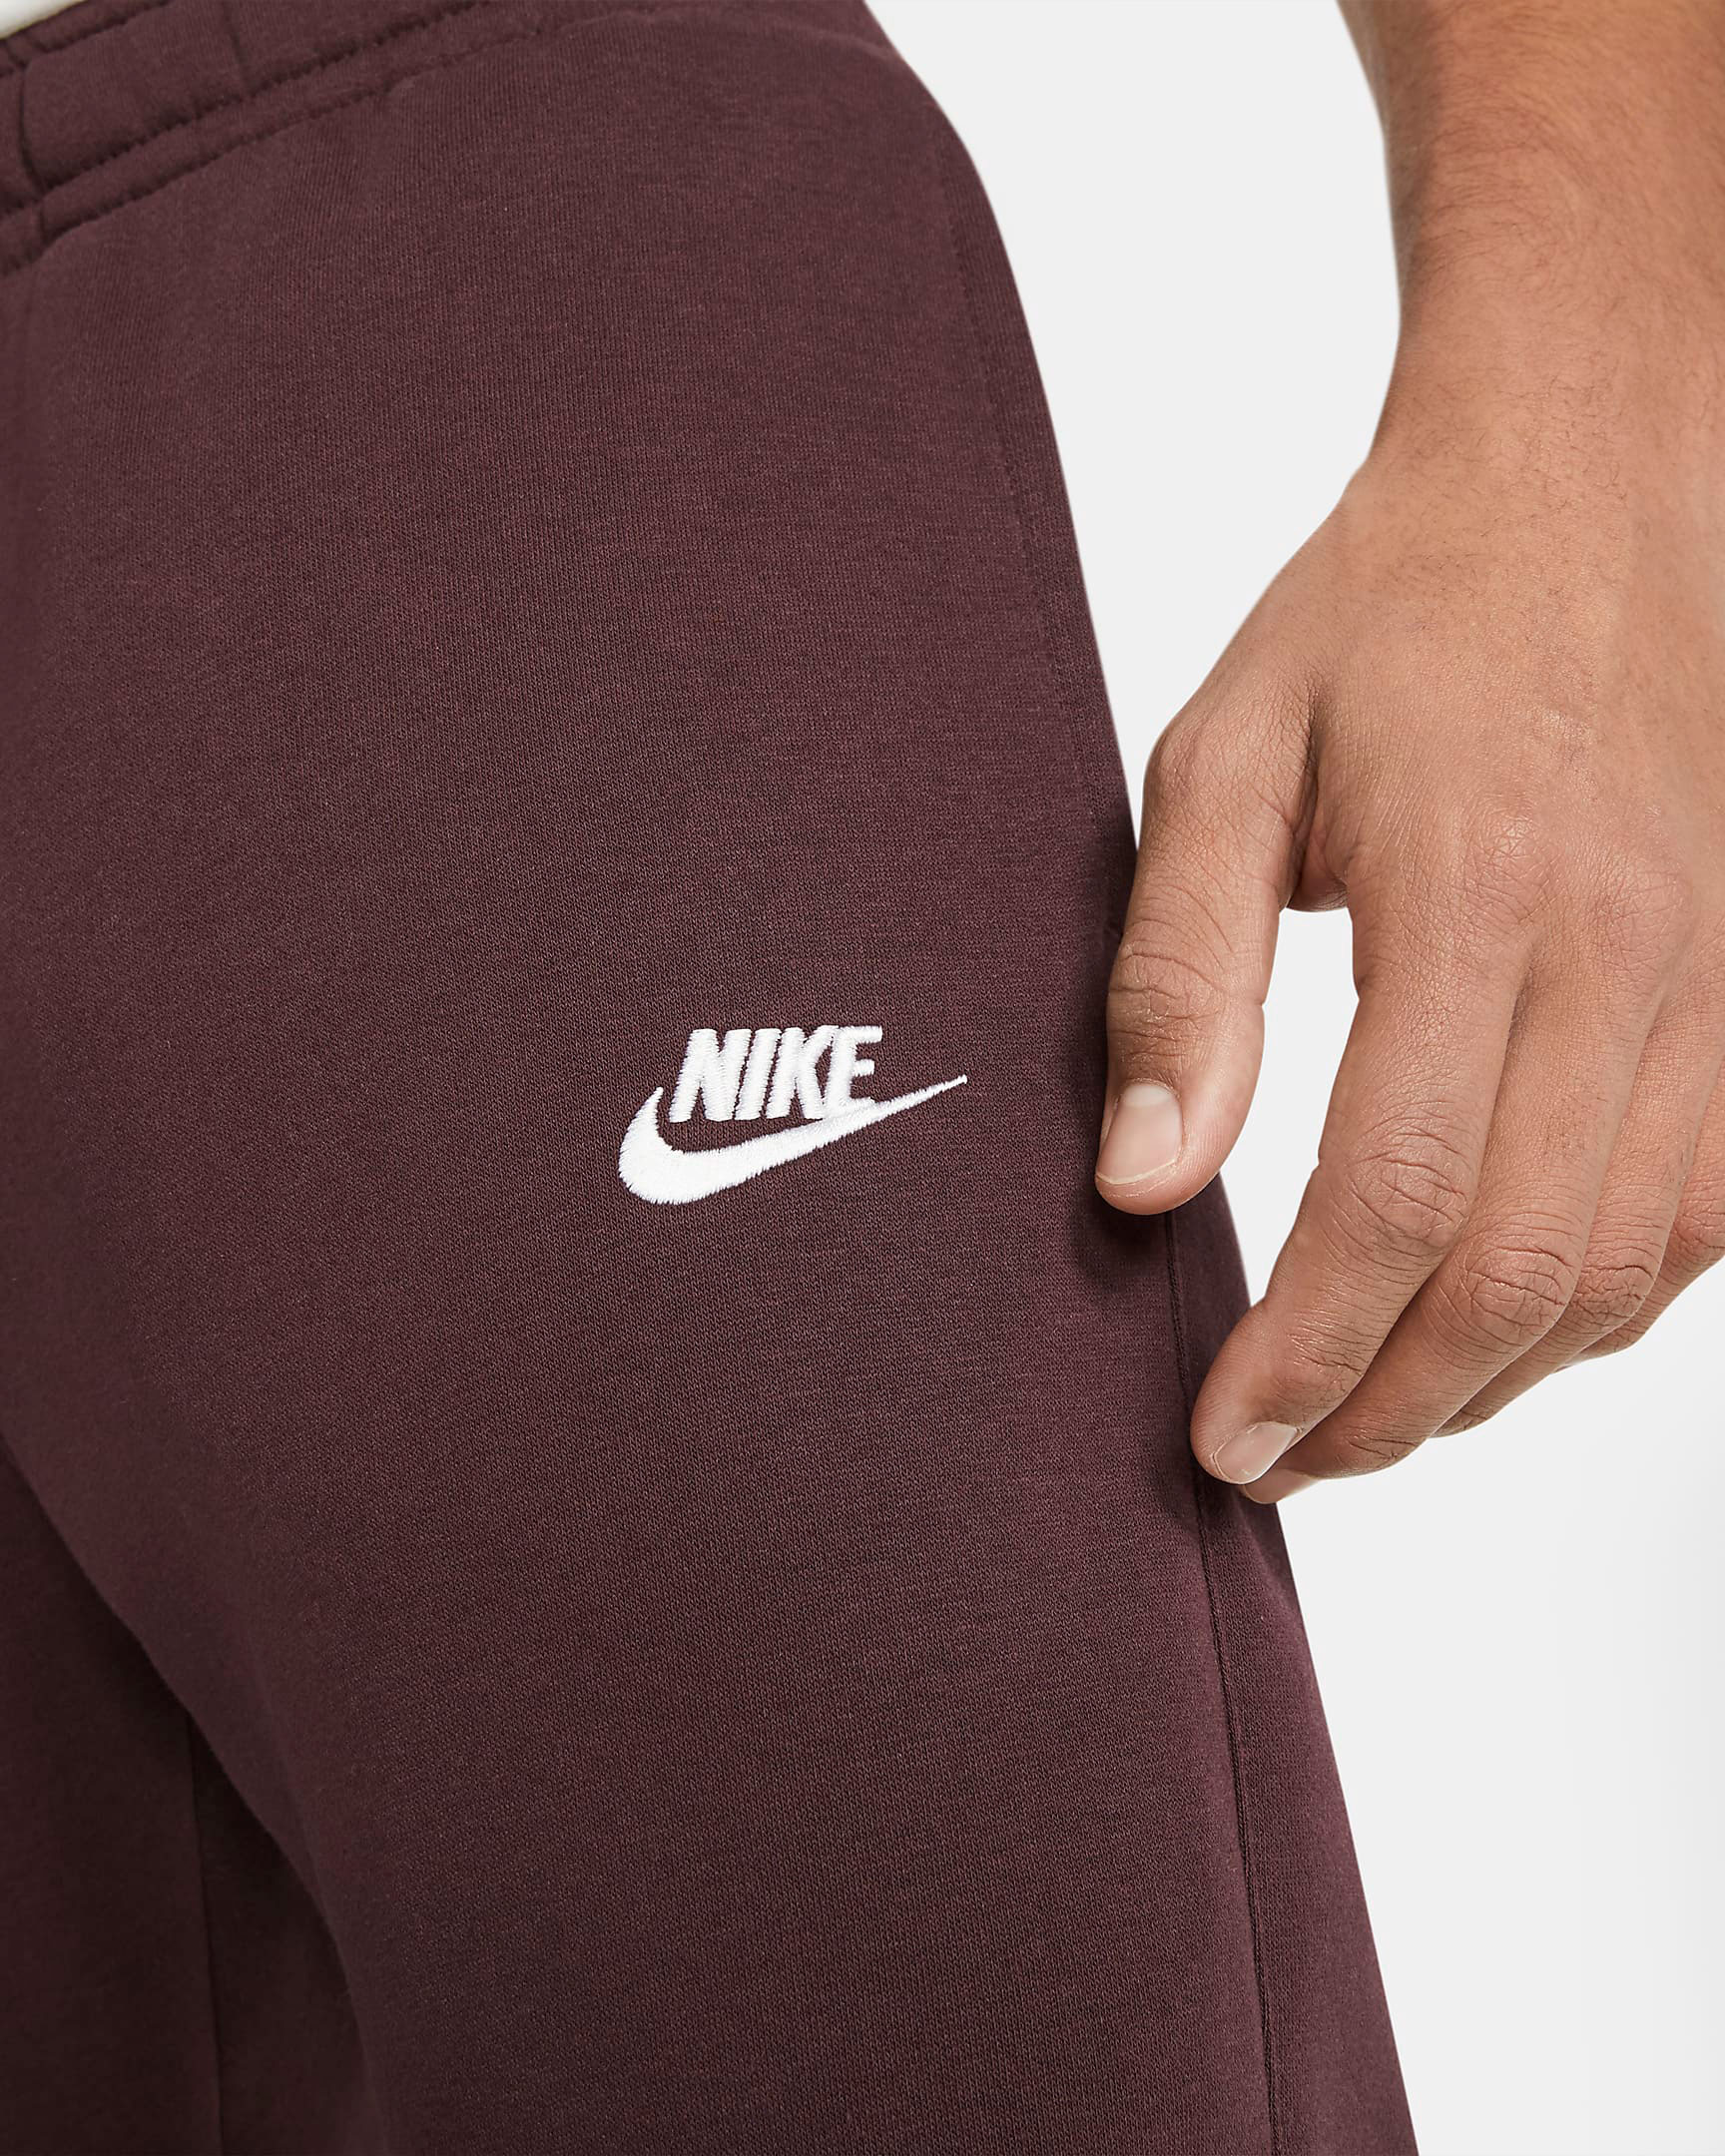 nike-club-fleece-jogger-pants-mahogany-brown-1